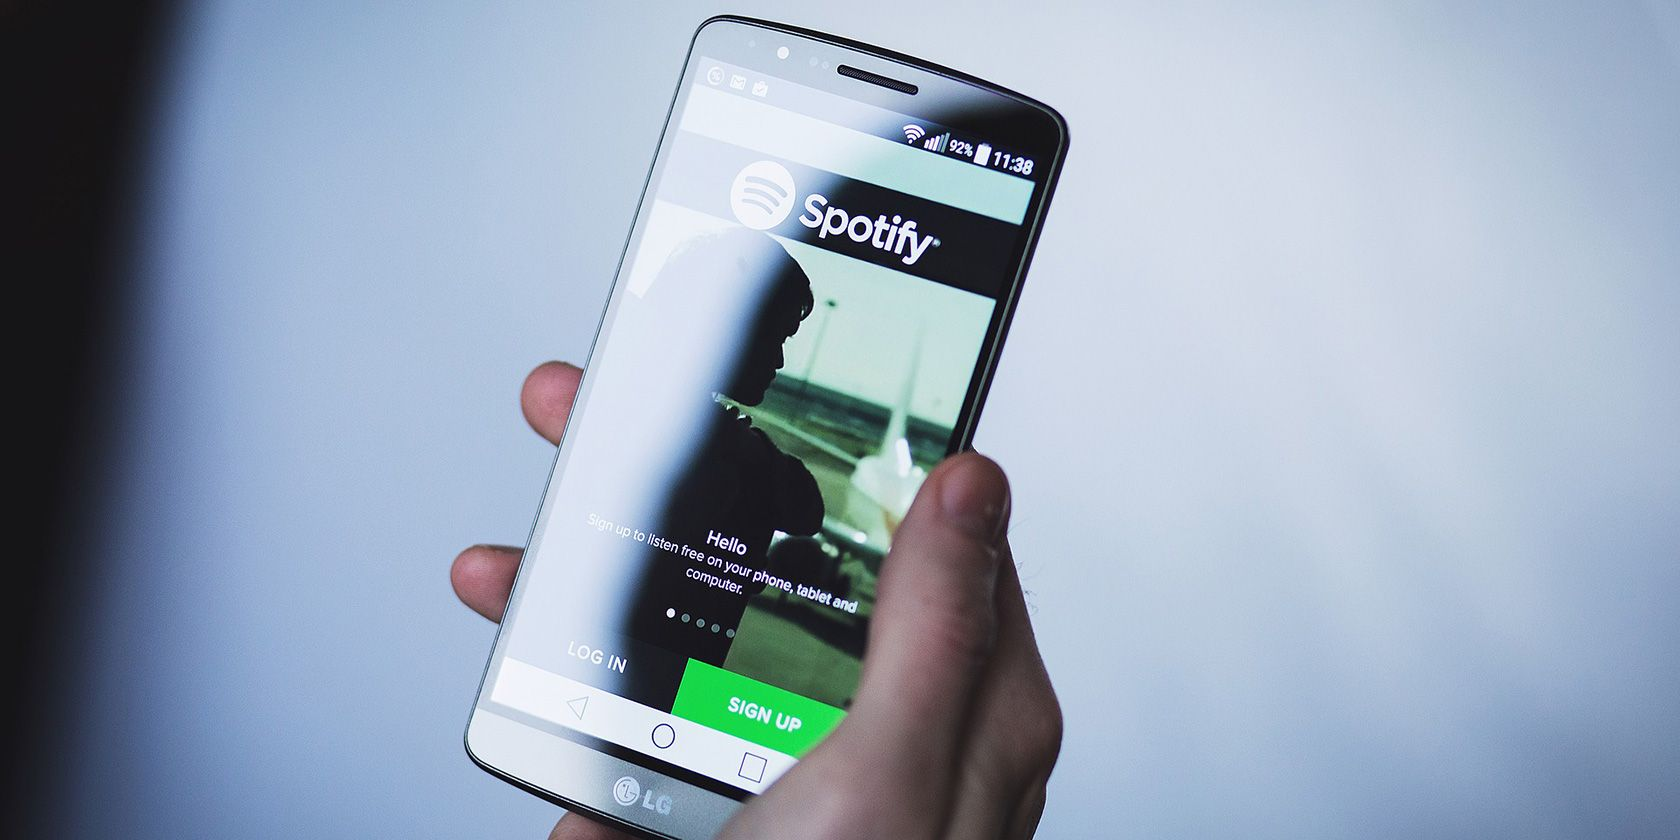 Why Is Spotify Working On a Speech Recognition System?